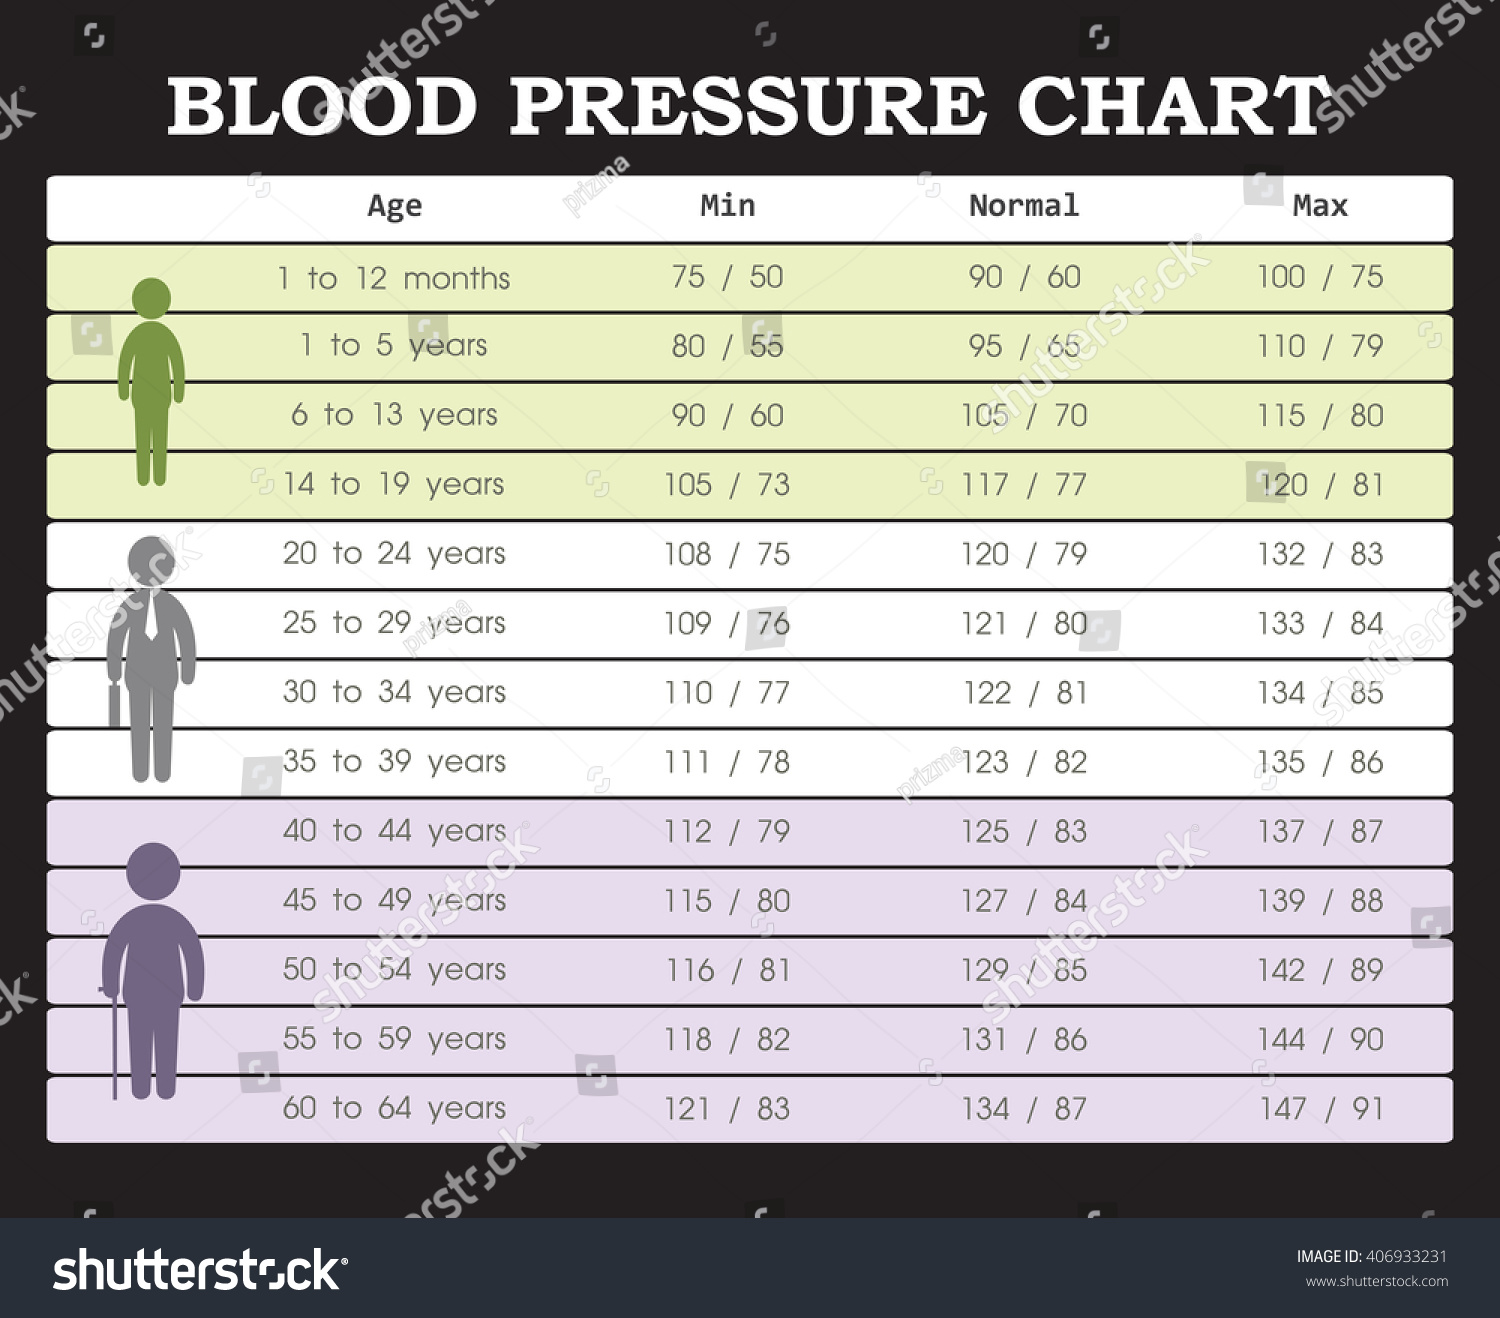 Blood pressure chart young people old stock vector 406933231 blood pressure chart from young people to old people nvjuhfo Images